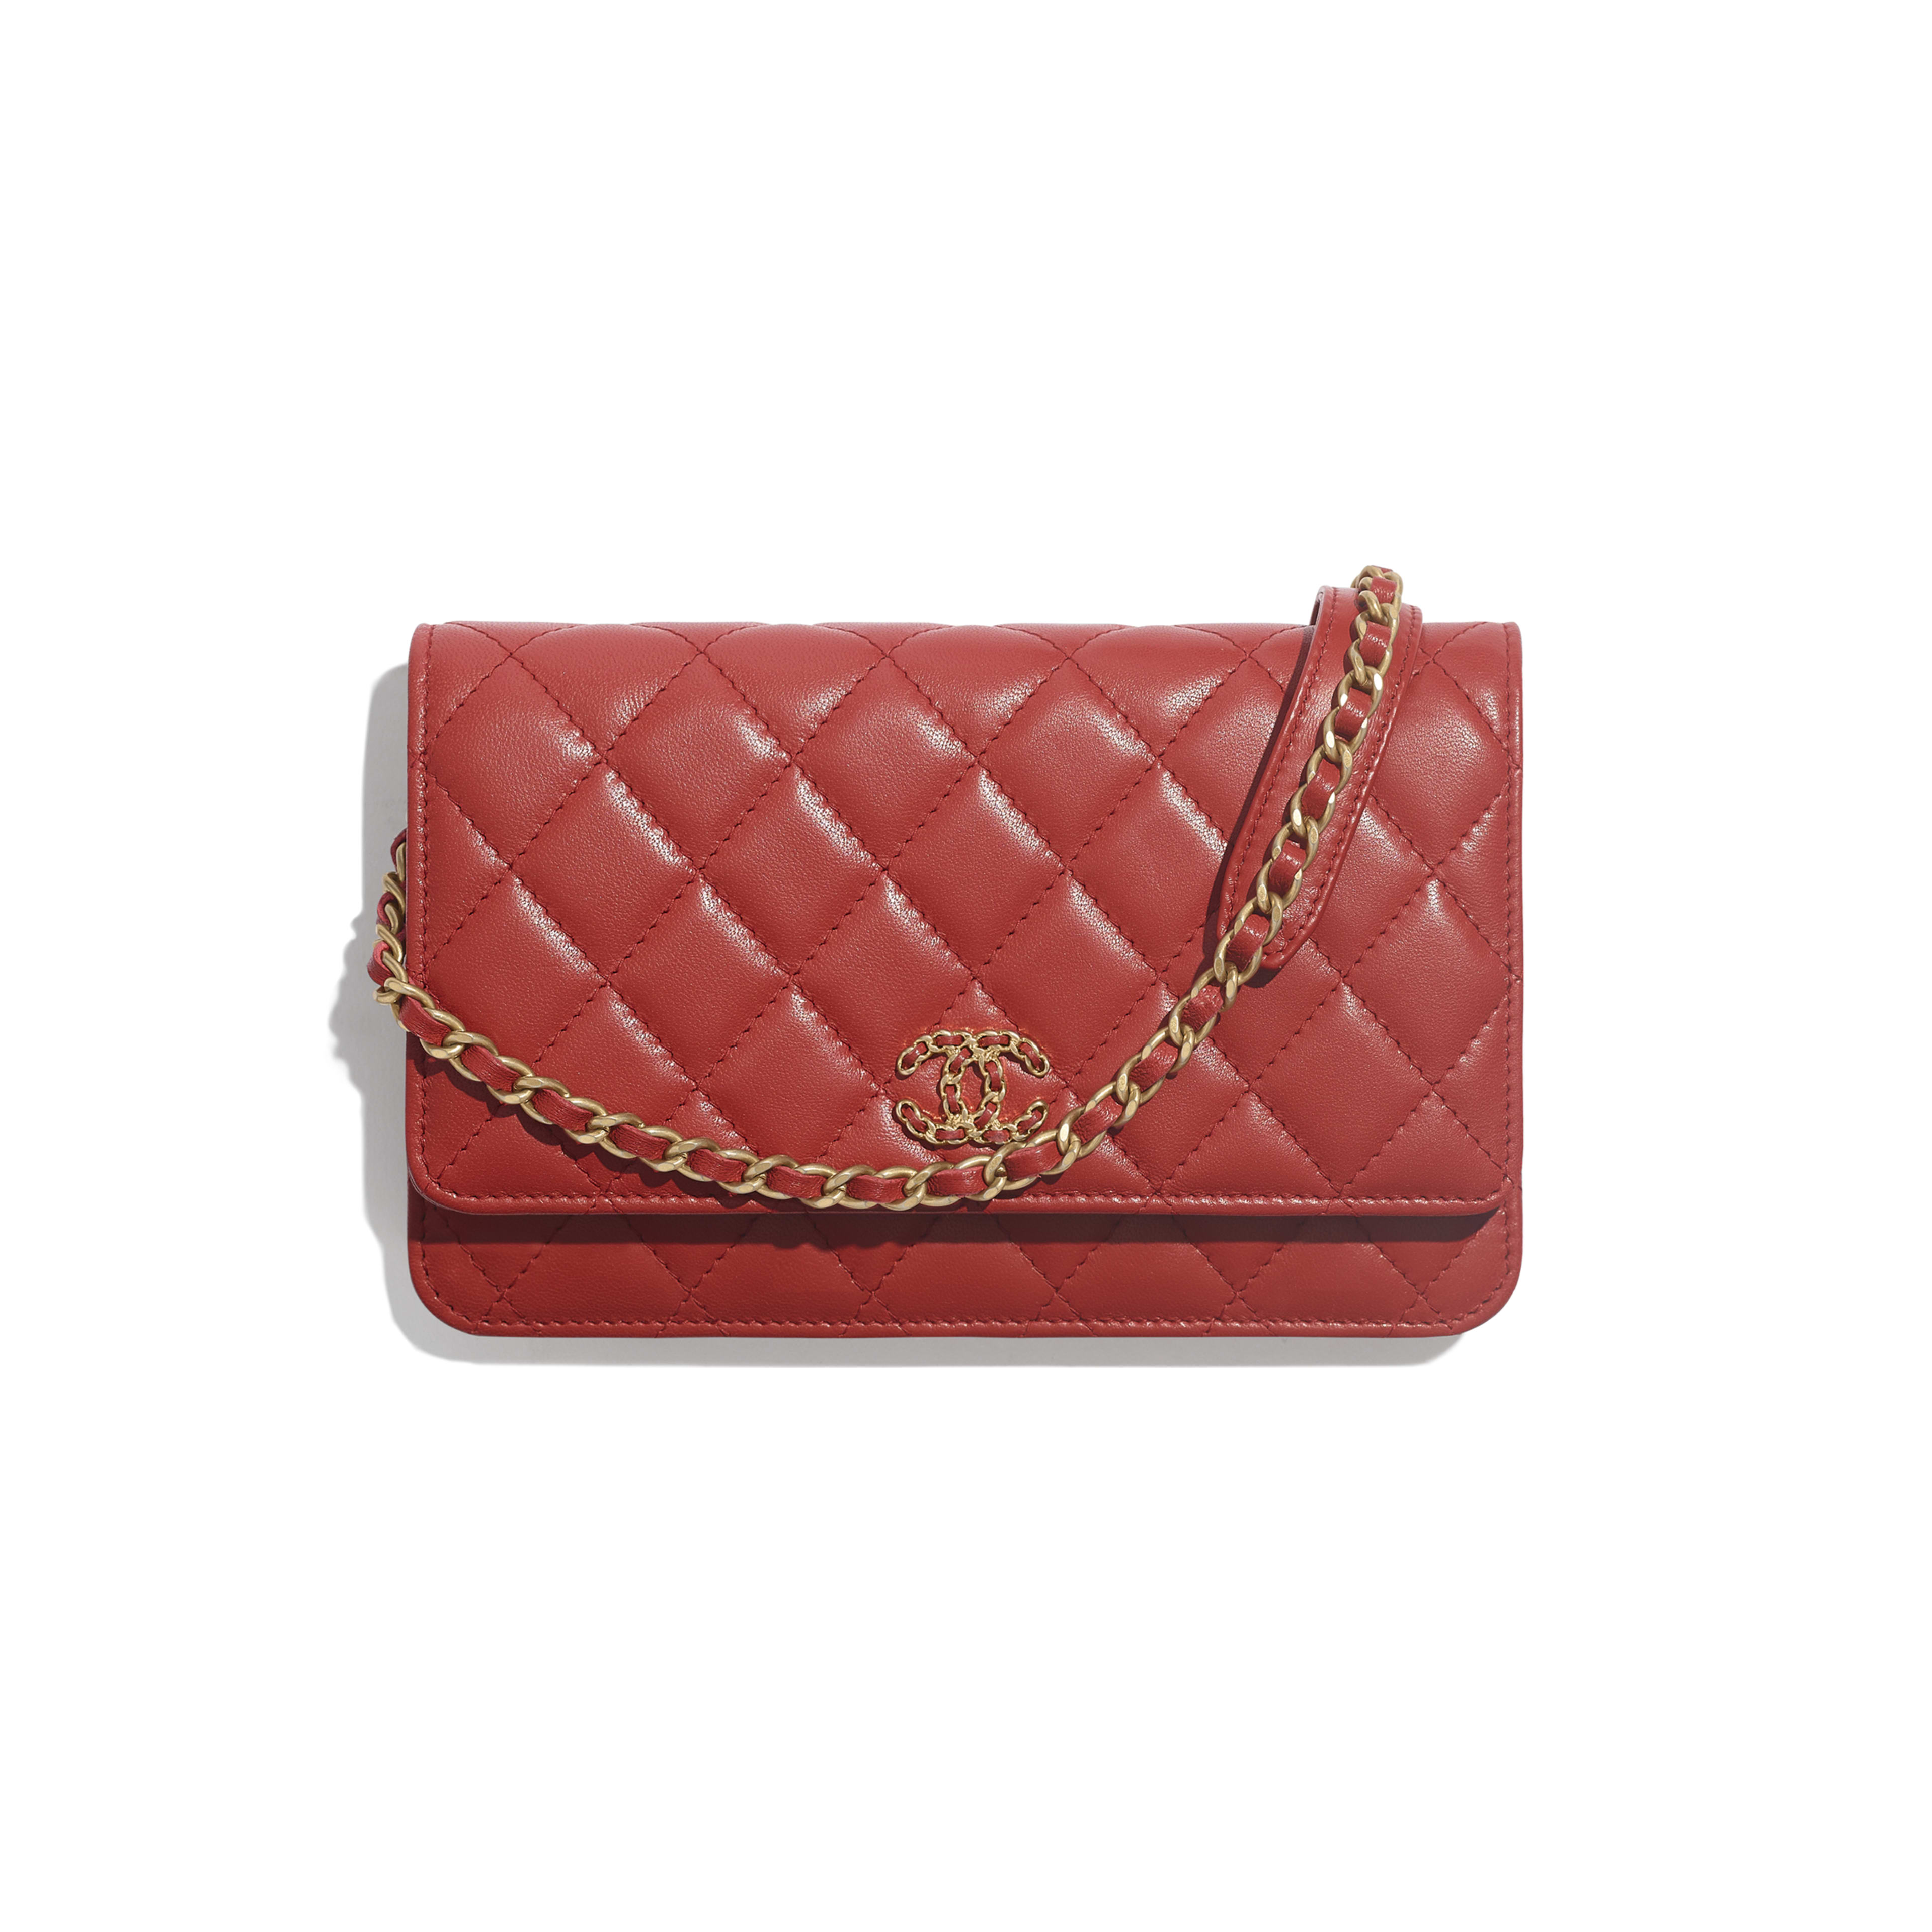 Wallet on Chain - Red - Lambskin & Gold-Tone Metal - Default view - see full sized version